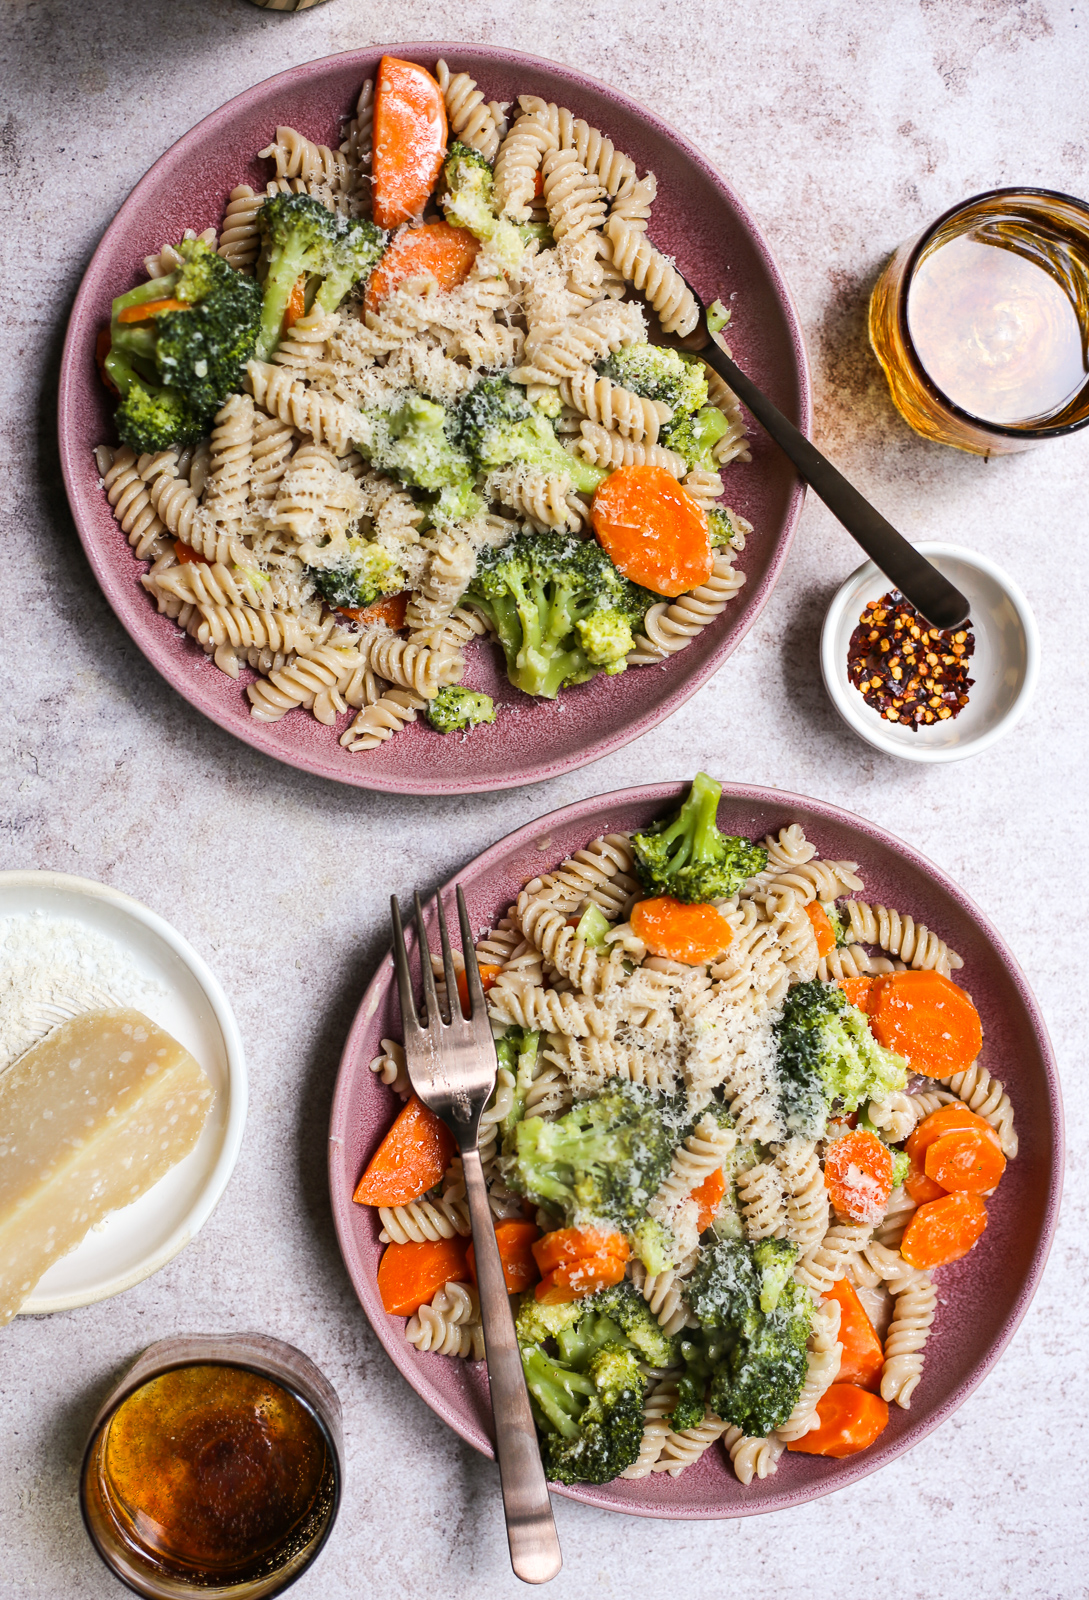 Aunt Leigh's Broccoli and Carrot Pasta